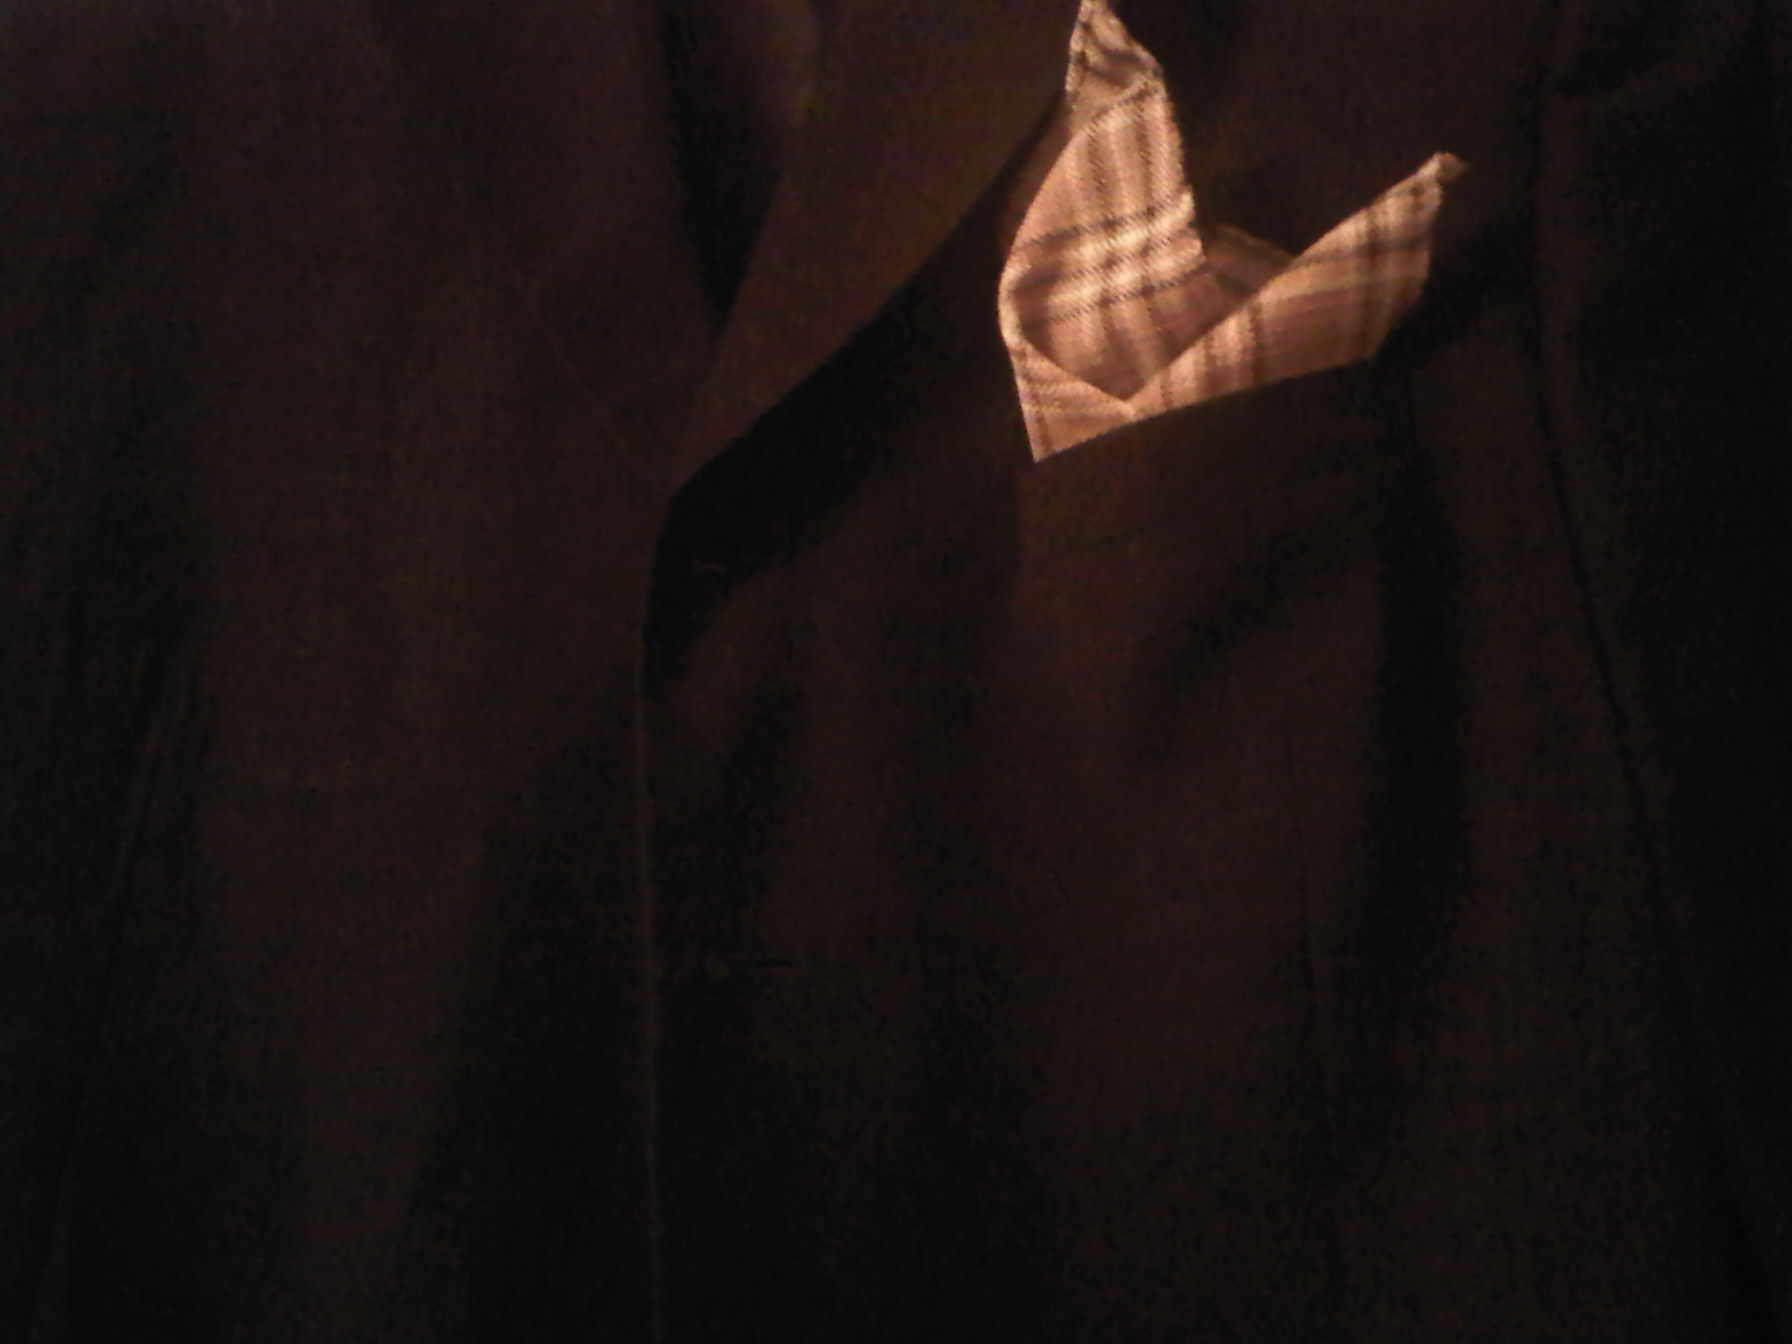 L & C Pocket Square for Men - Couture Designed - Hand Crafted $8.00